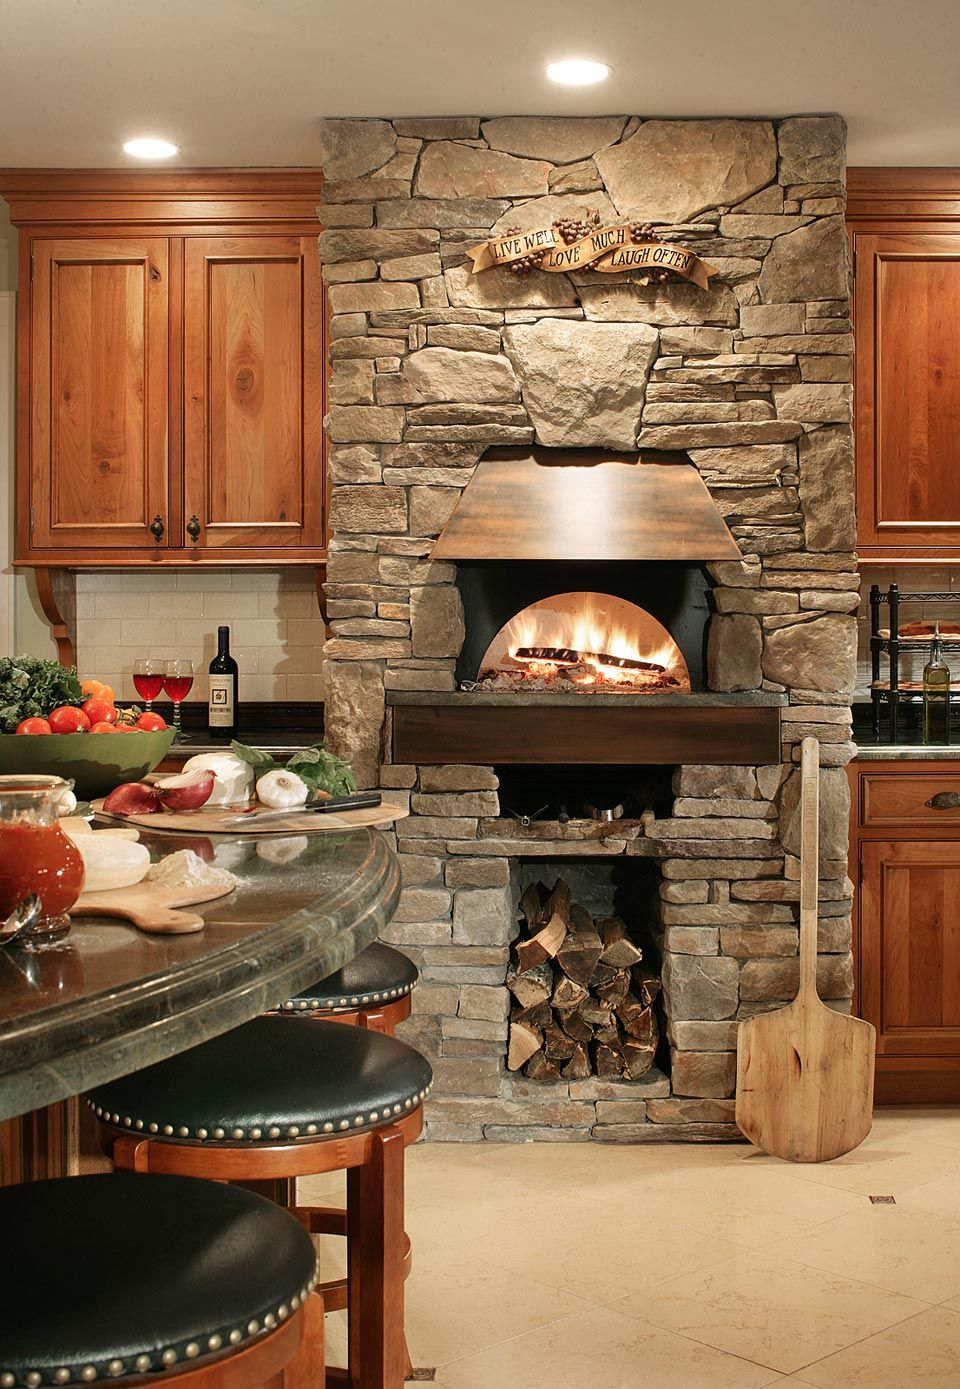 Bilotta Traditional Kitchens - Pizza oven | Home - Kitchens ...